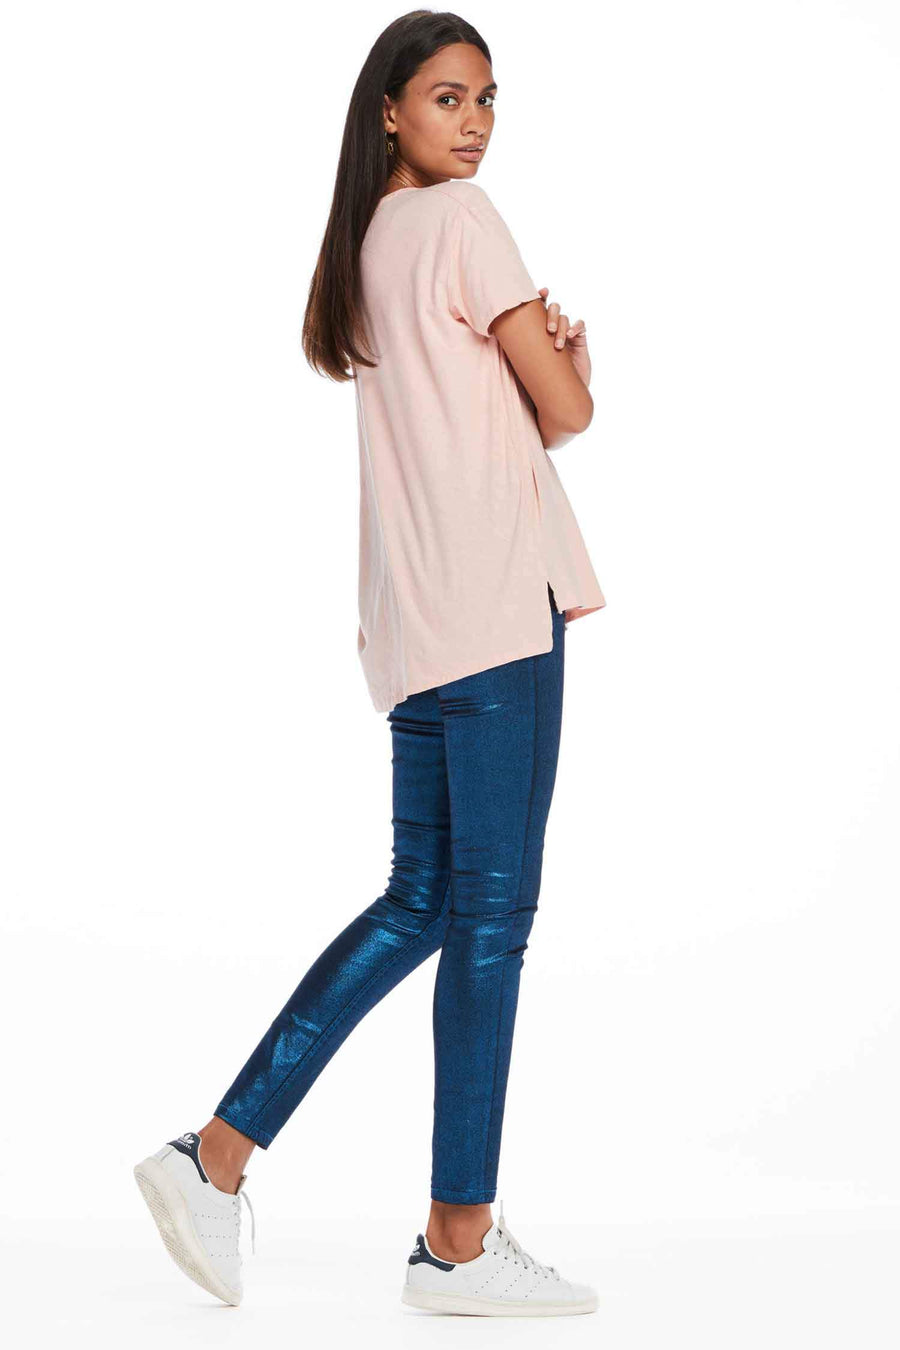 Basic Chest Pocket T-Shirt in Blush by Maison Scotch Frockaholics.com